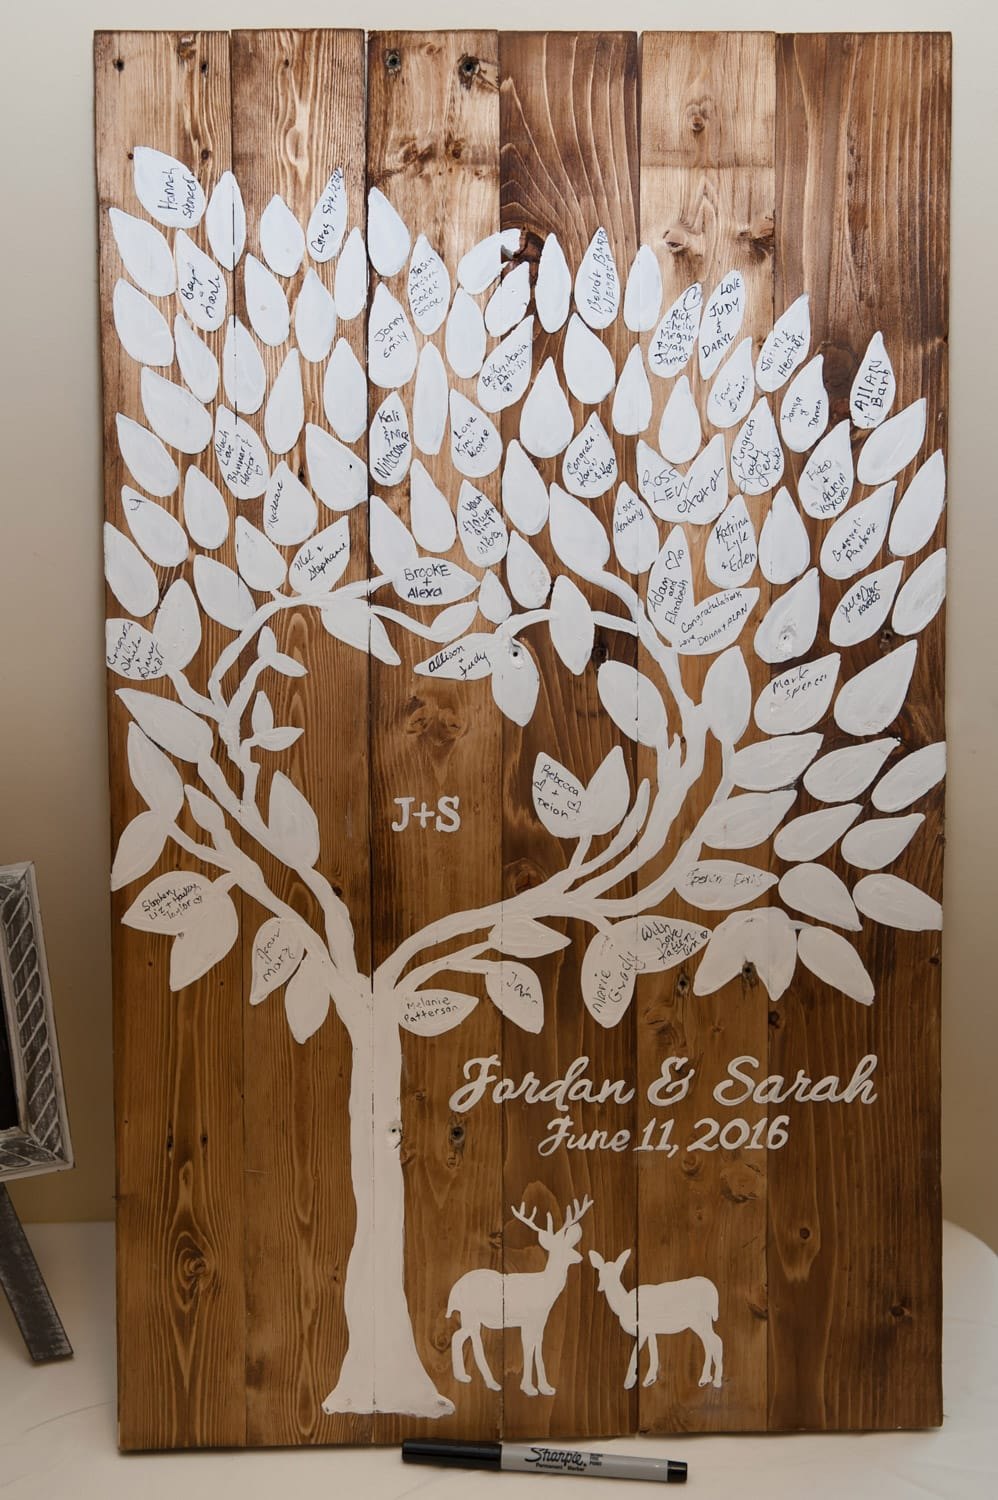 a wooden wedding guest book in the shape of a family tree for wedding guests to sign